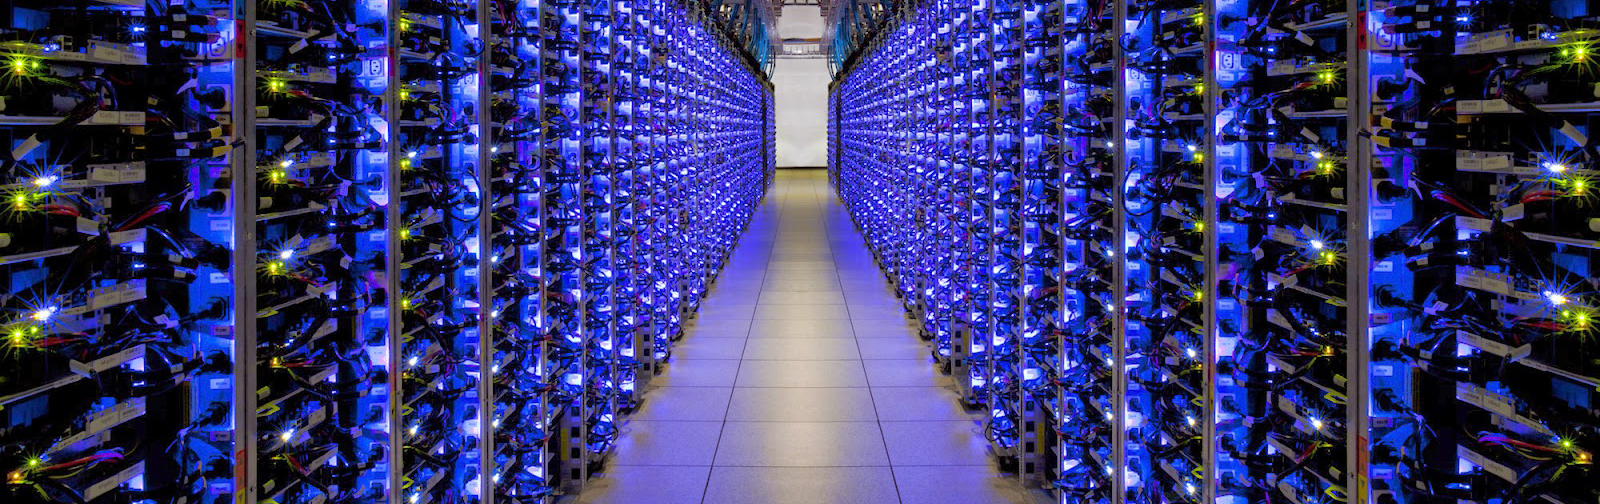 An Amazon Cloud Server Room